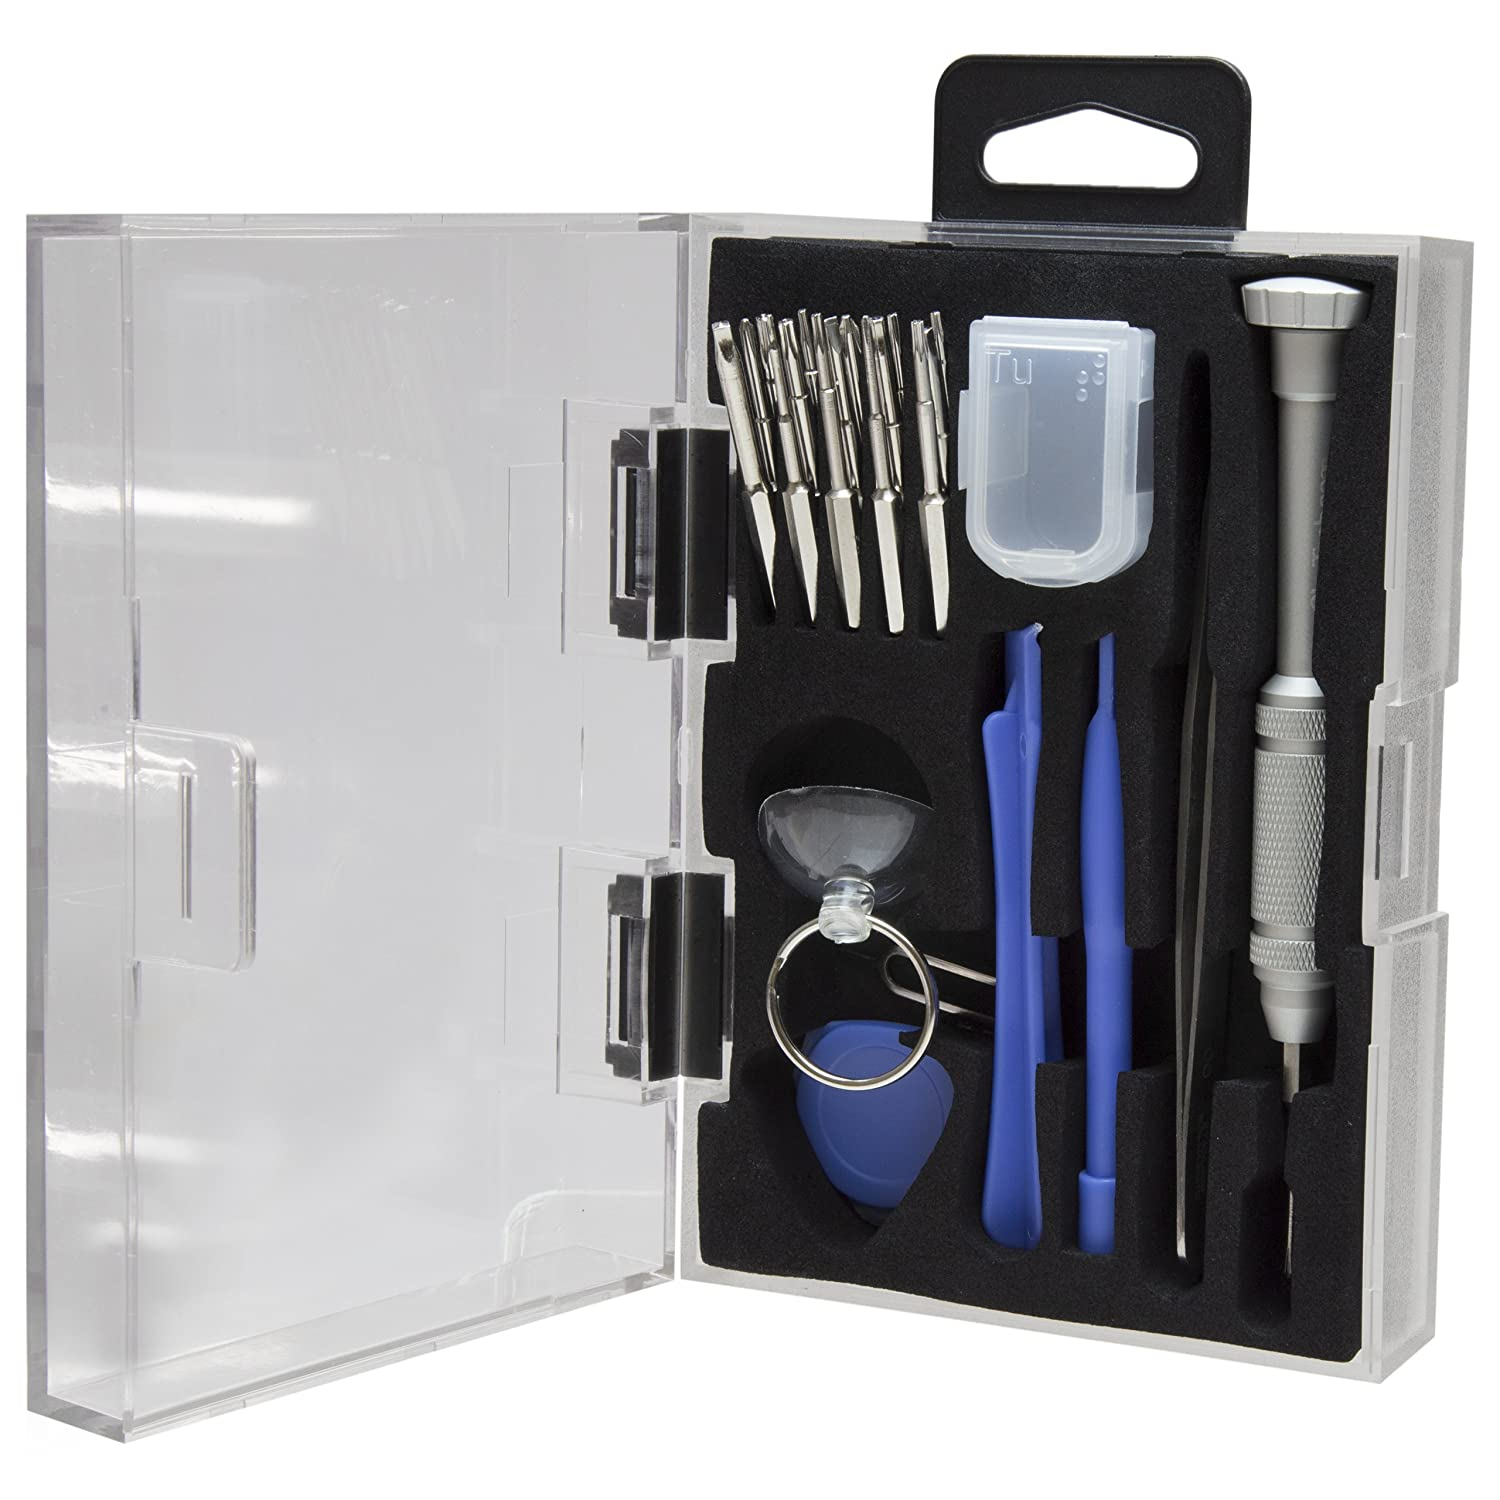 StarTech.com Cell Phone Repair Kit - with Case - Multipurpose - Computer Tool Kit - Electronics Kit - PC Tool Kit